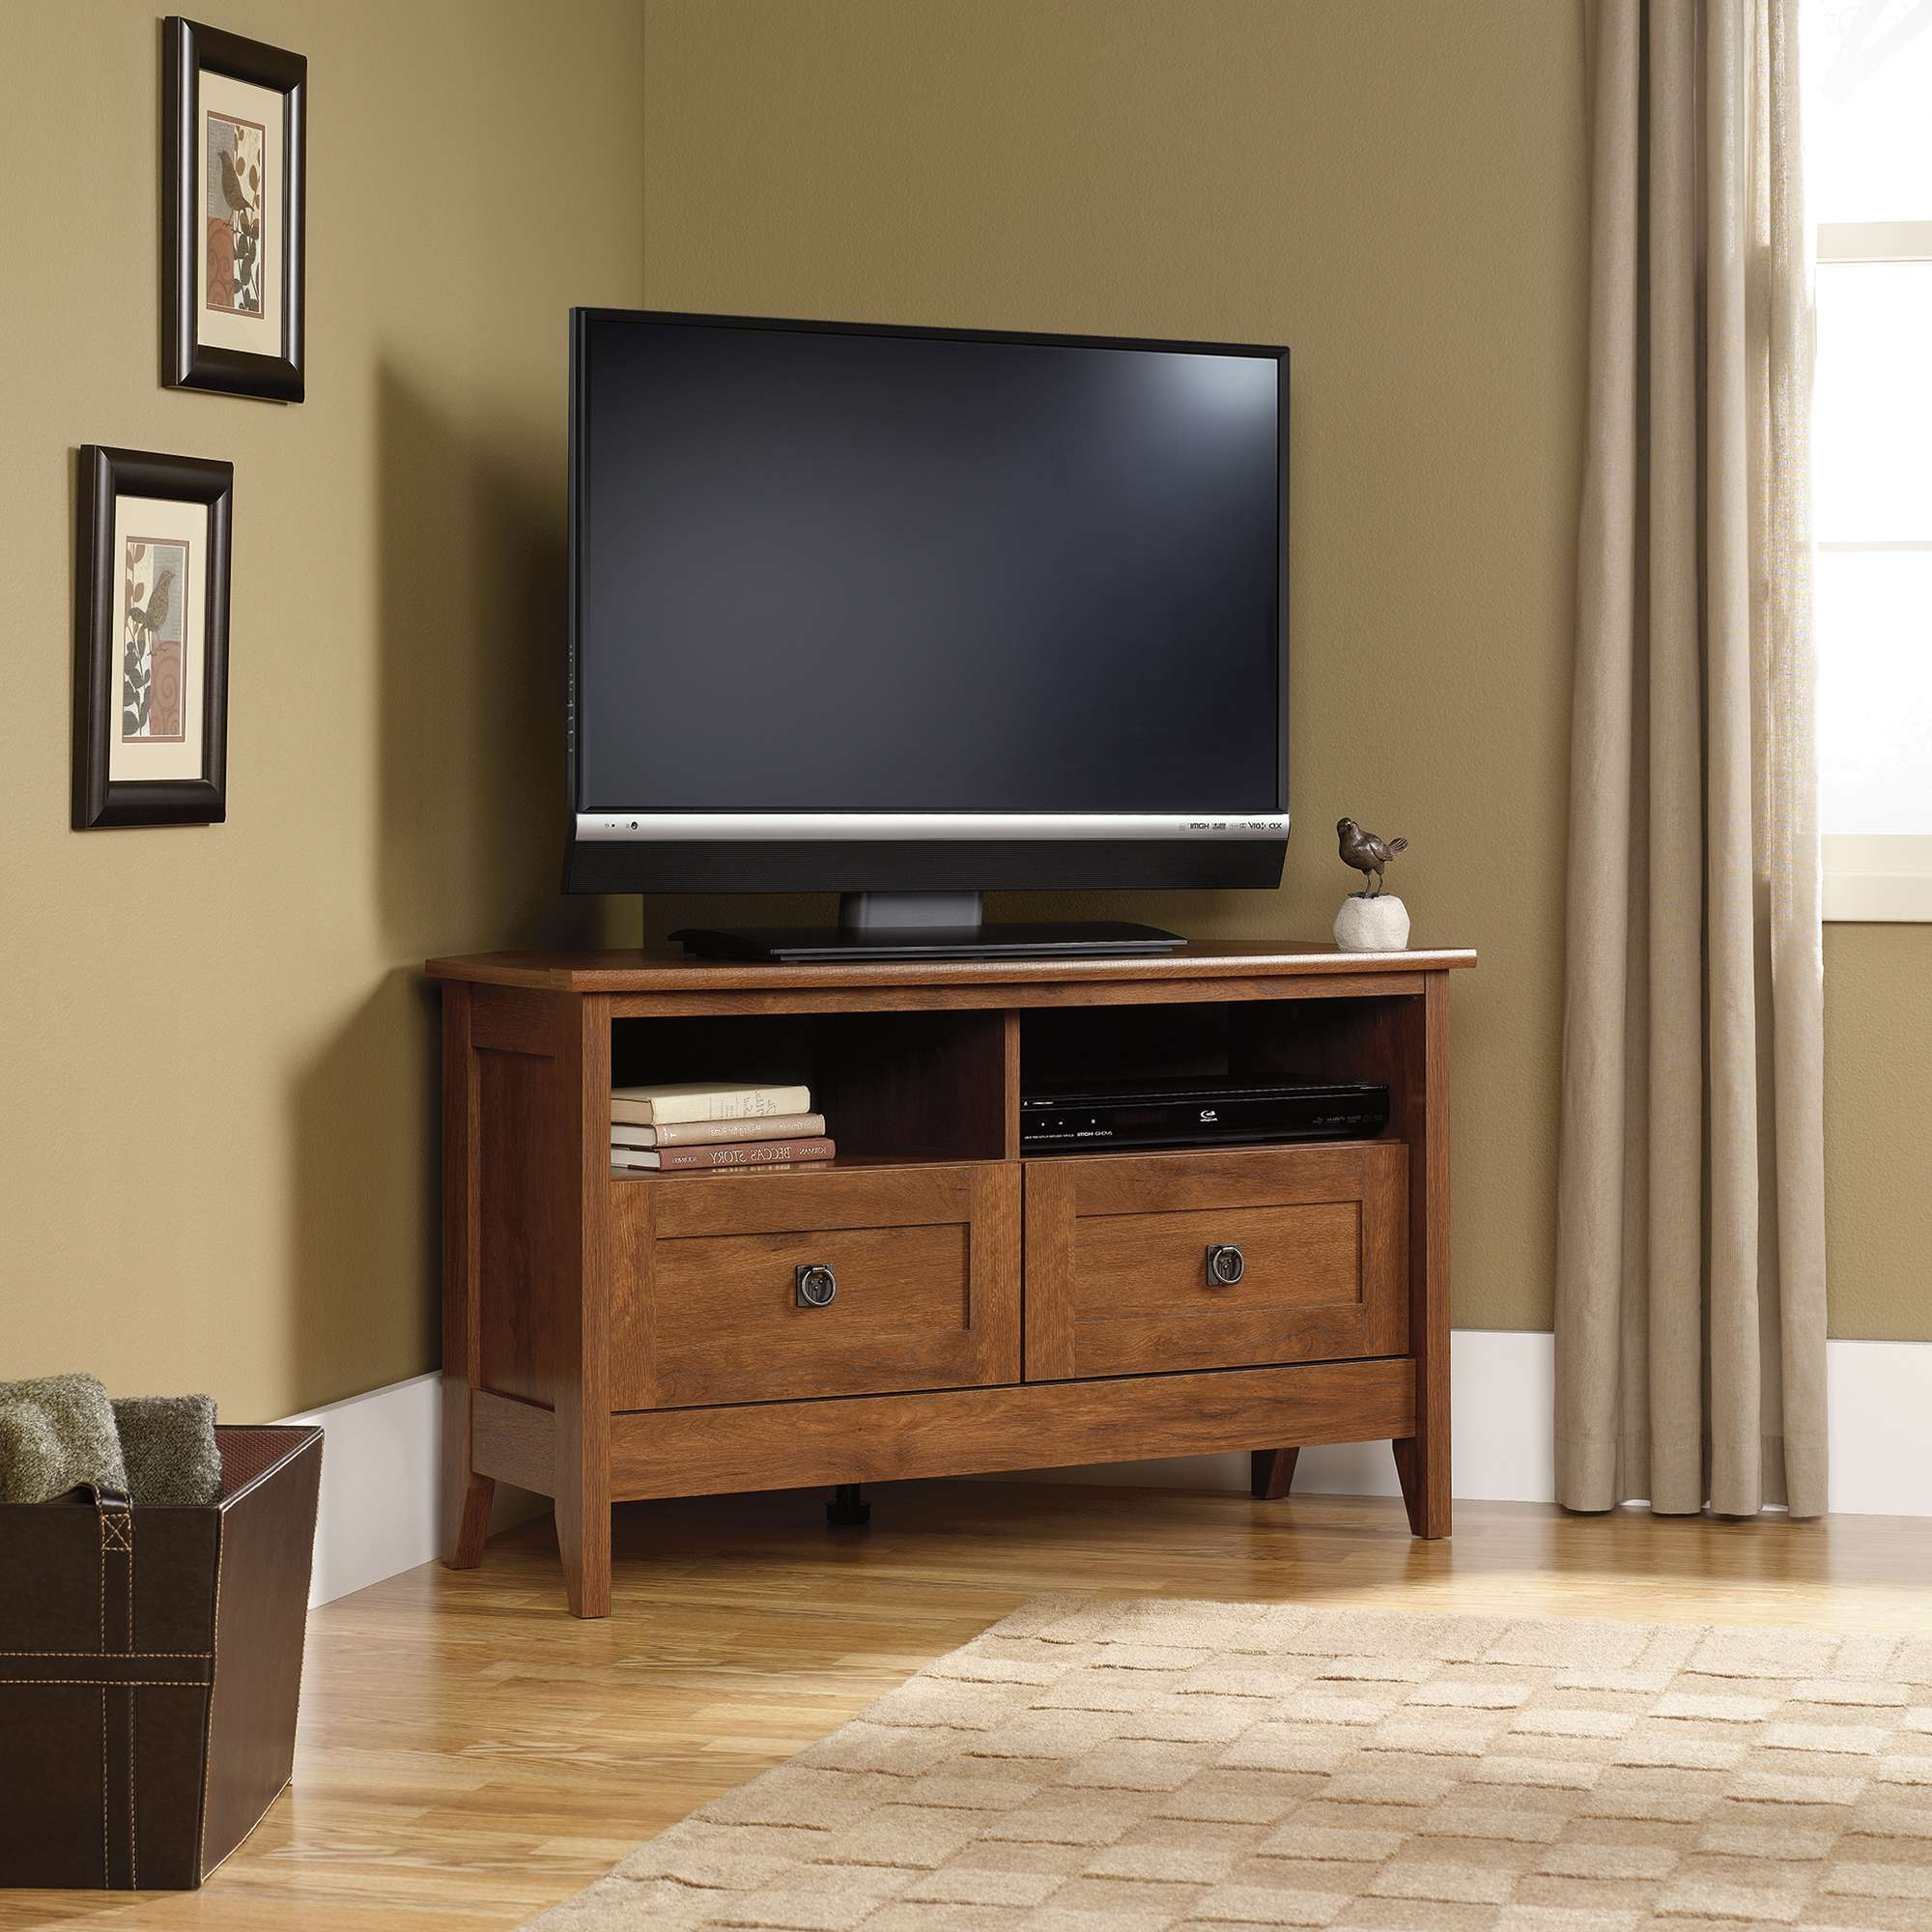 Best Corner Tv Stands For 55 Inch Tv 69 About Remodel Home Design With Regard To 55 Inch Corner Tv Stands (View 3 of 20)